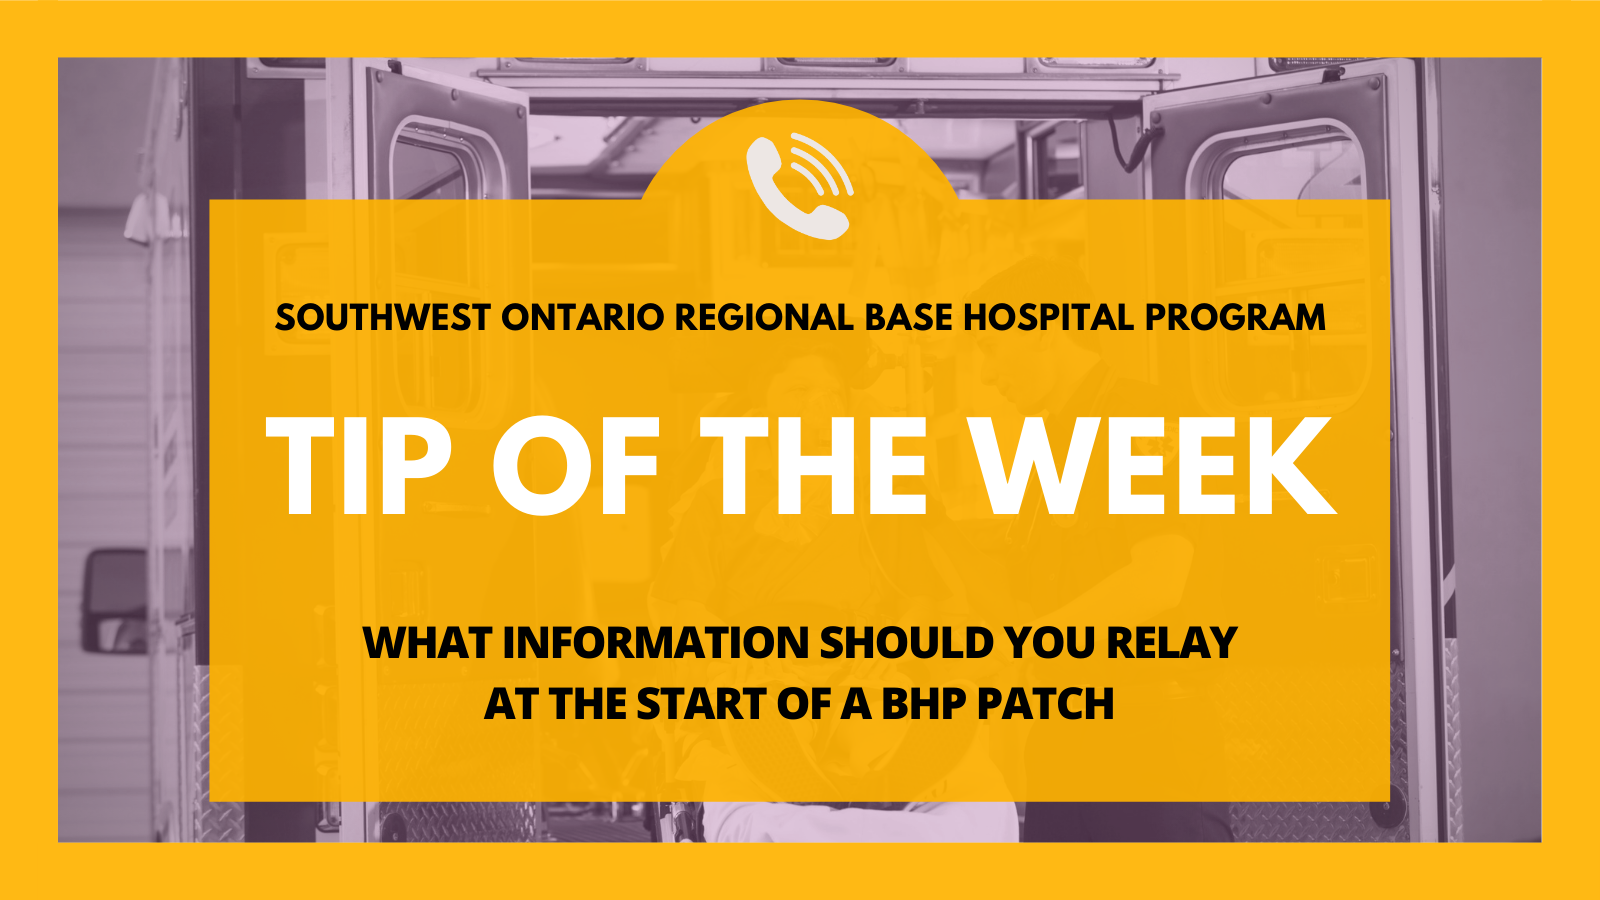 TOTW: What Information Should You Relay at the Start of a BHP Patch